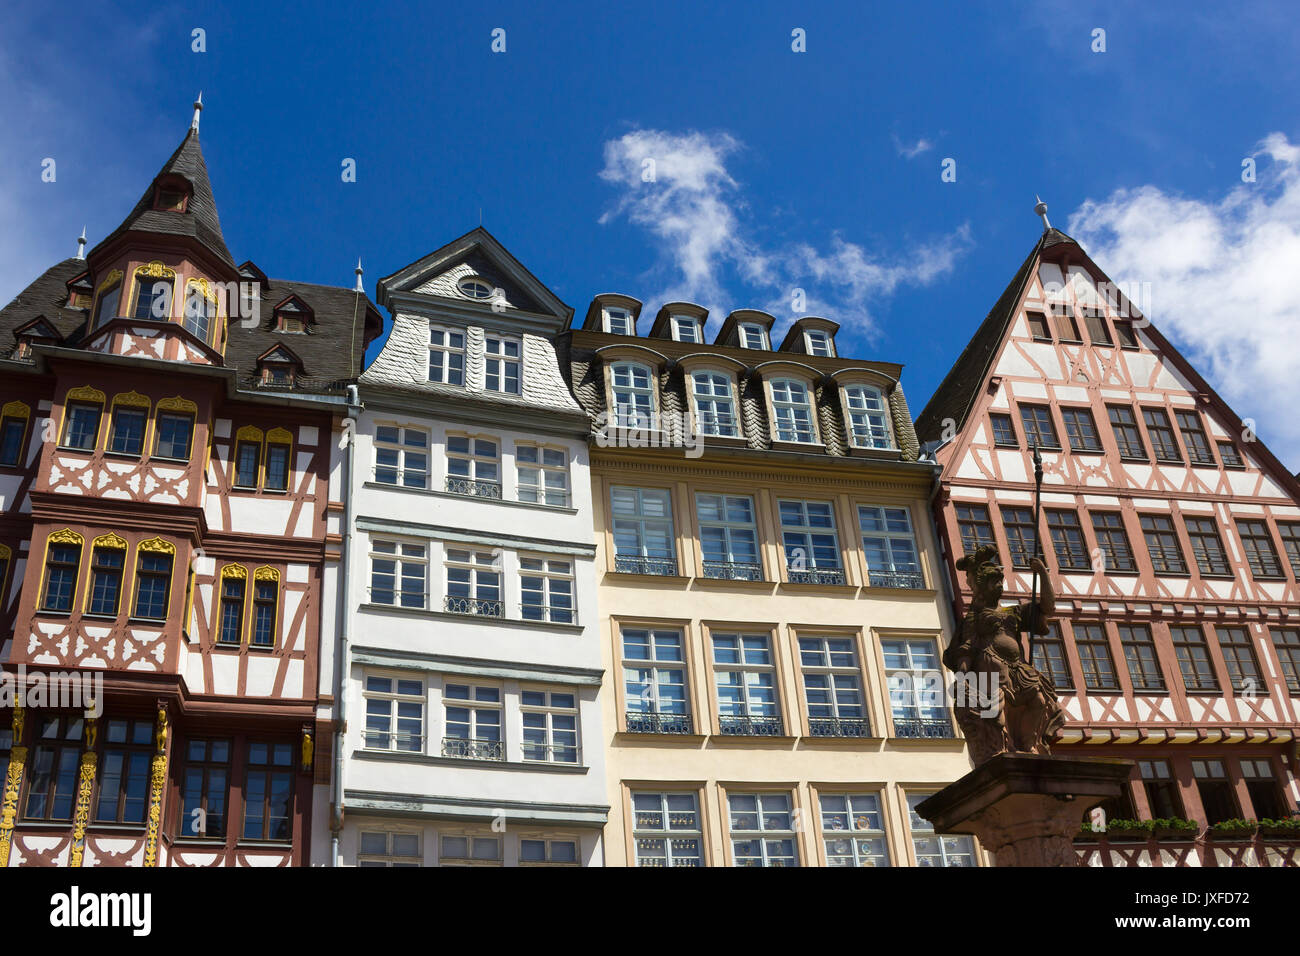 The old town with the Justitia statue in Frankfurt - Stock Image